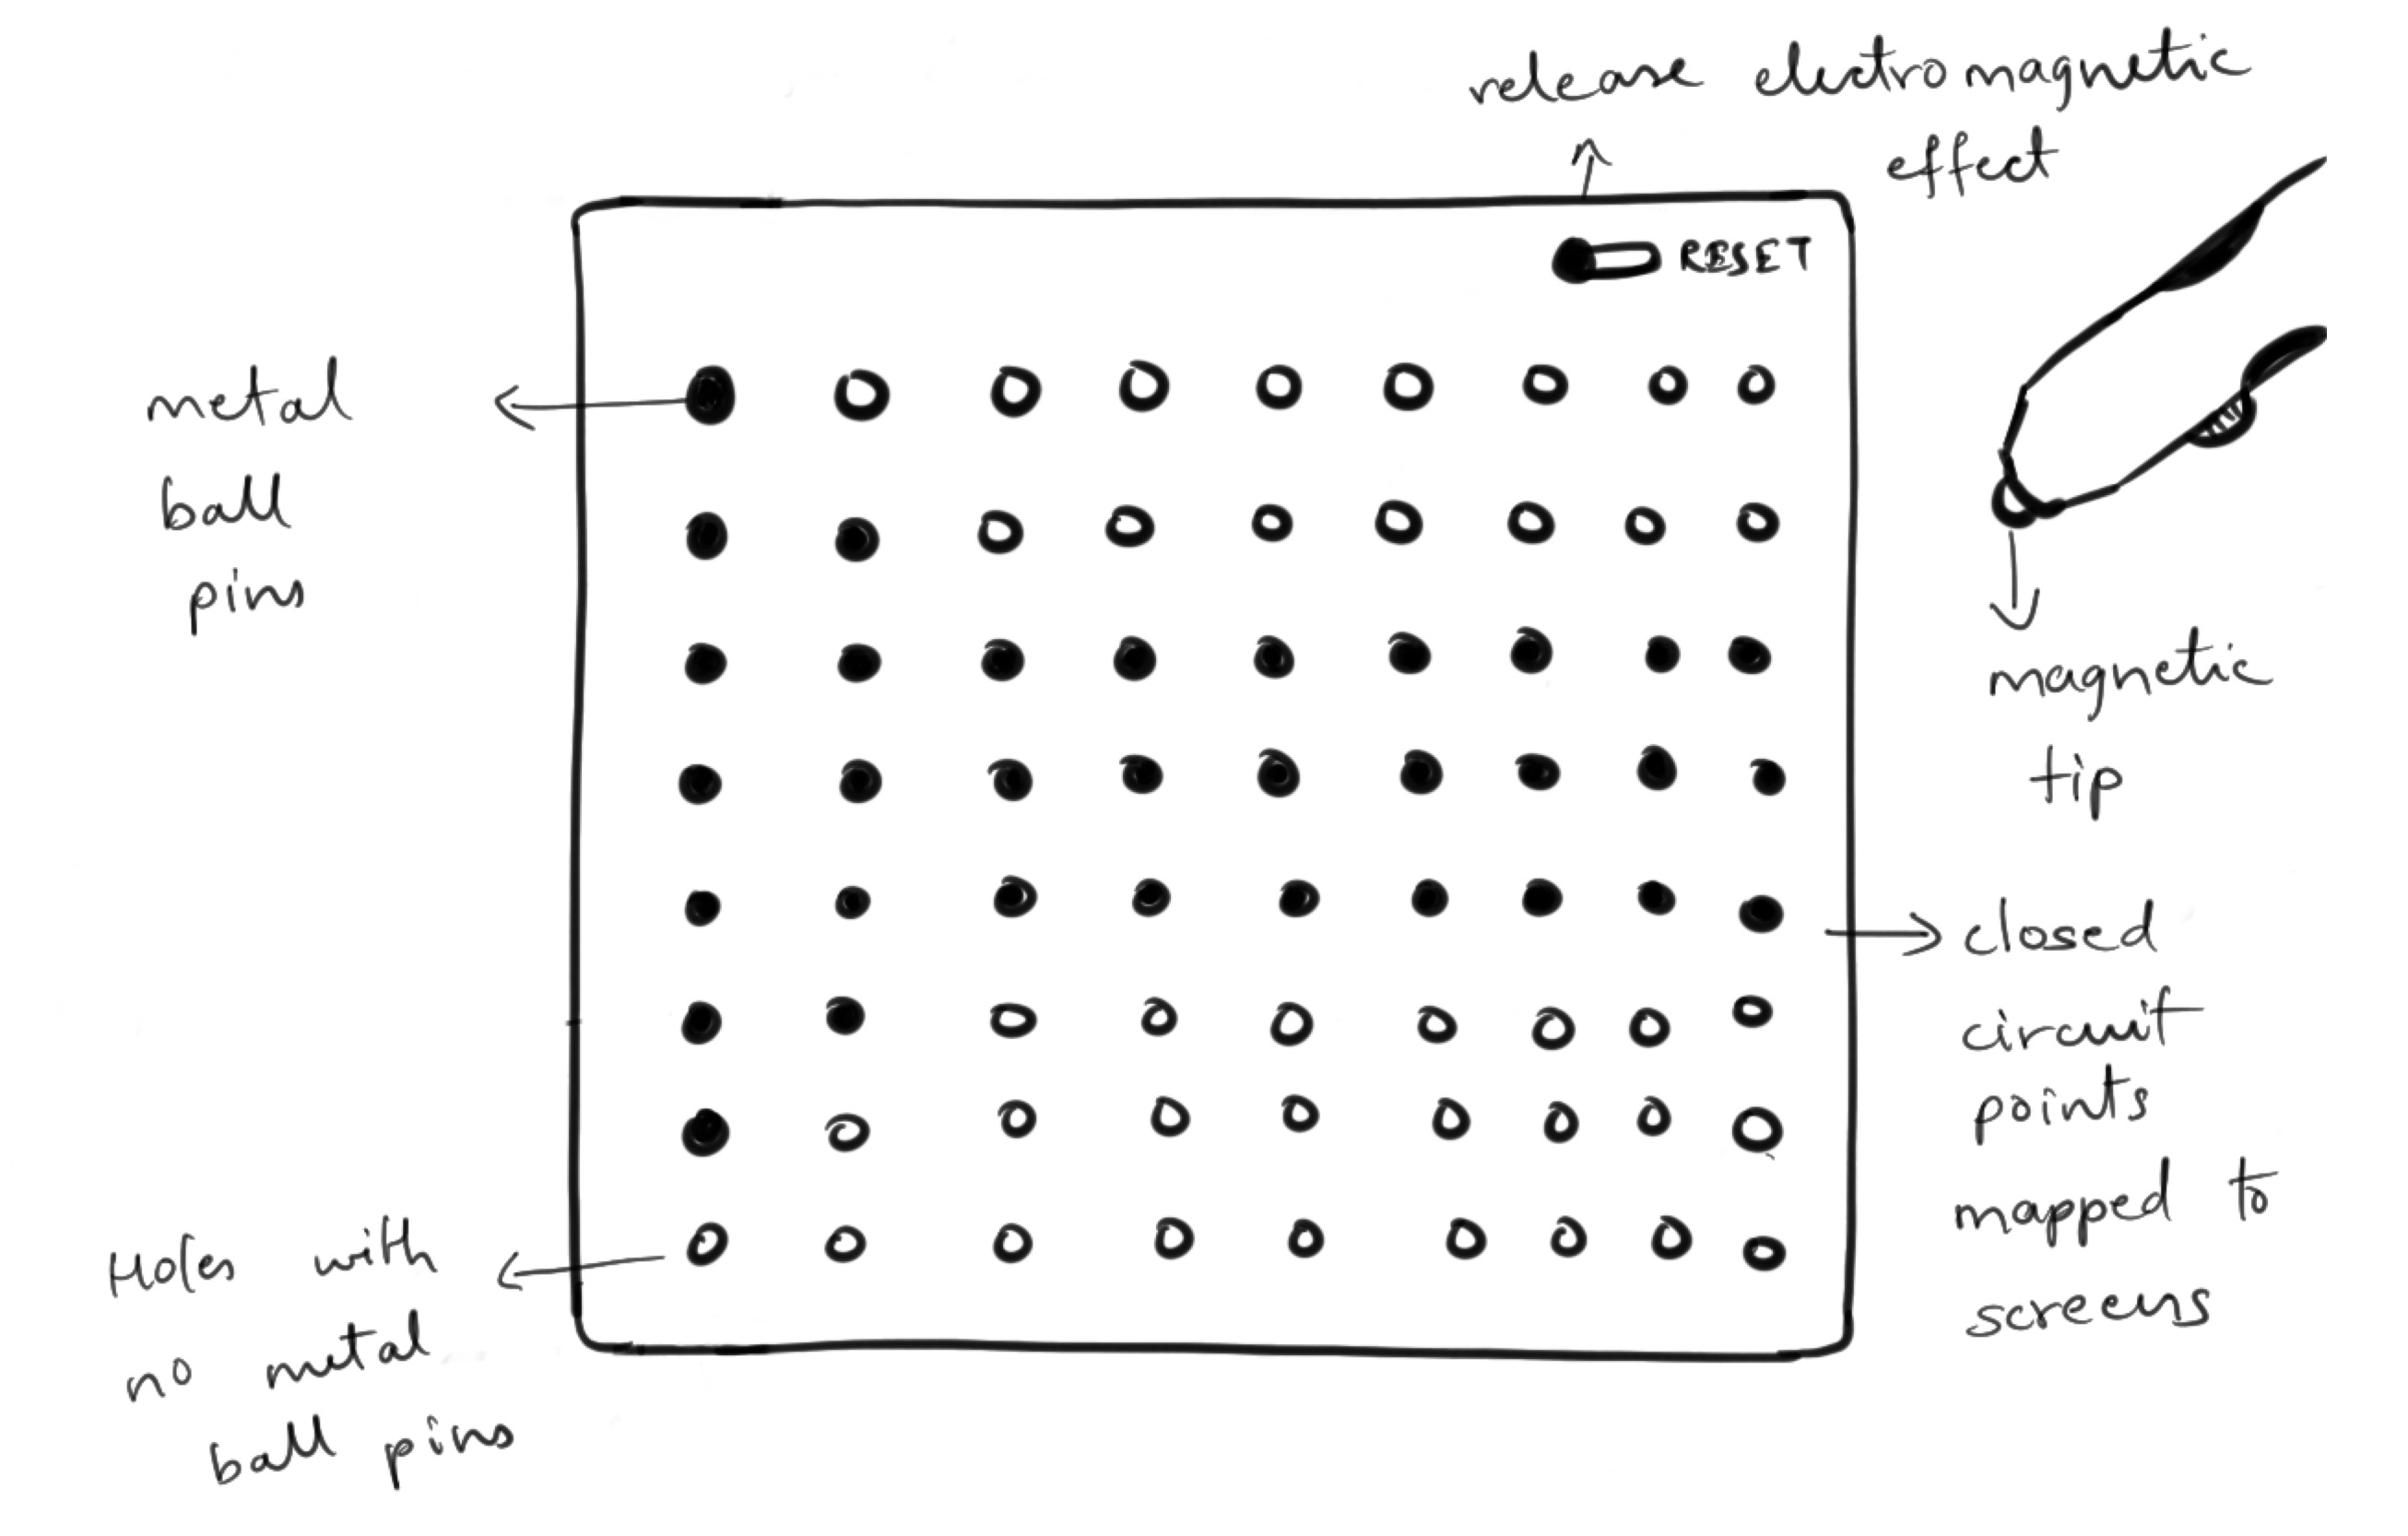 Image showing metal ball concept in which users use a magnetic tip enabled pen to draw. The pin attracts metal balls in circular slots. This allows visually impaired users to perceive diagrams.